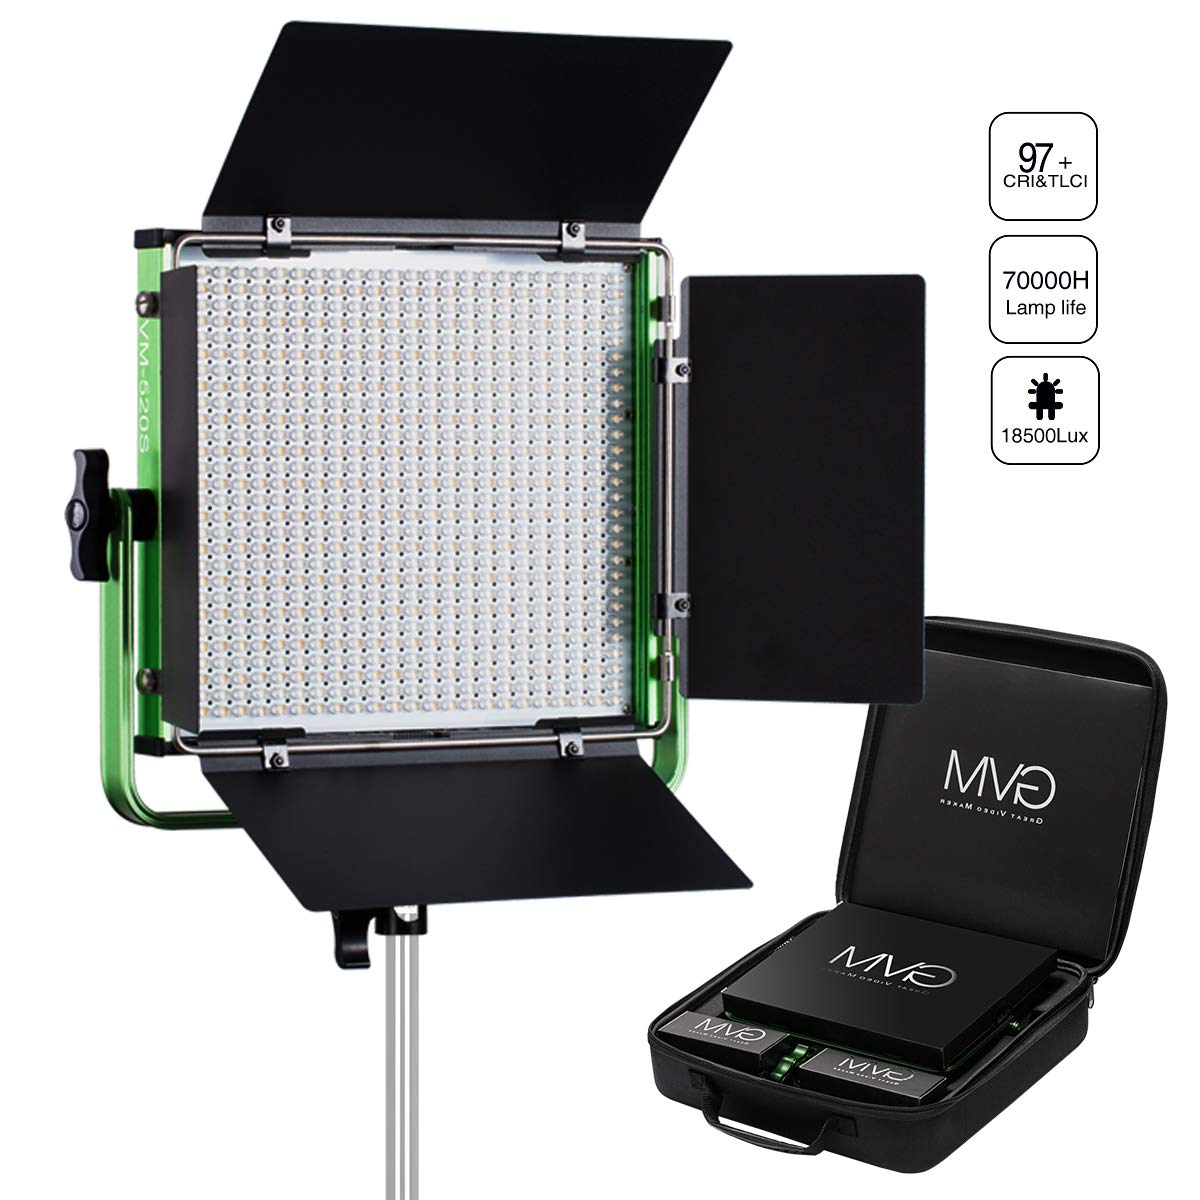 GVM Led Video Light with Memory Button and Wireless Remote Control, CRI97 / 3200-5600k / Photography Lighting for Studio, Indoor, Outdoor Video Tracking by GVM Great Video Maker